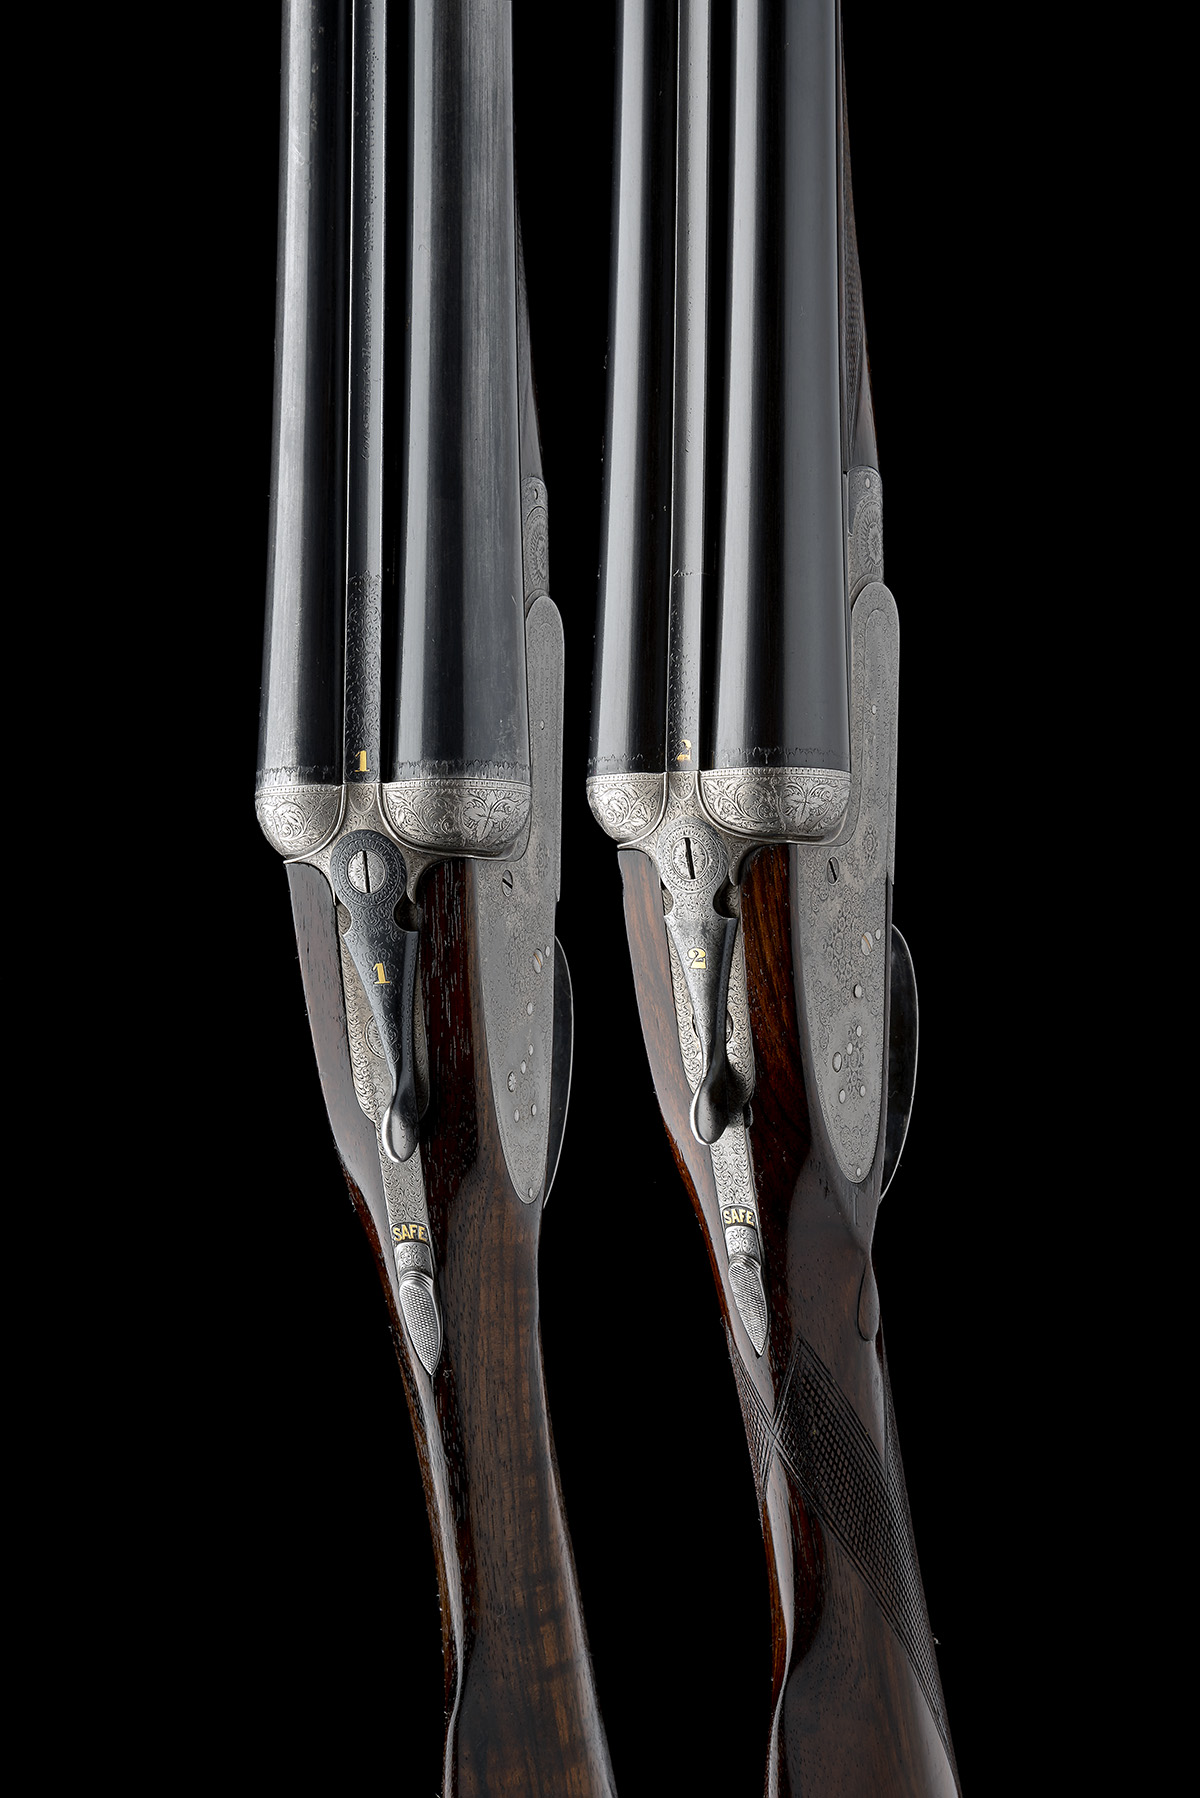 COGSWELL & HARRISON A PAIR OF 12-BORE 'EXTRA QUALITY VICTOR' SIDELOCK EJECTORS, serial no. 42510/ - Image 6 of 10